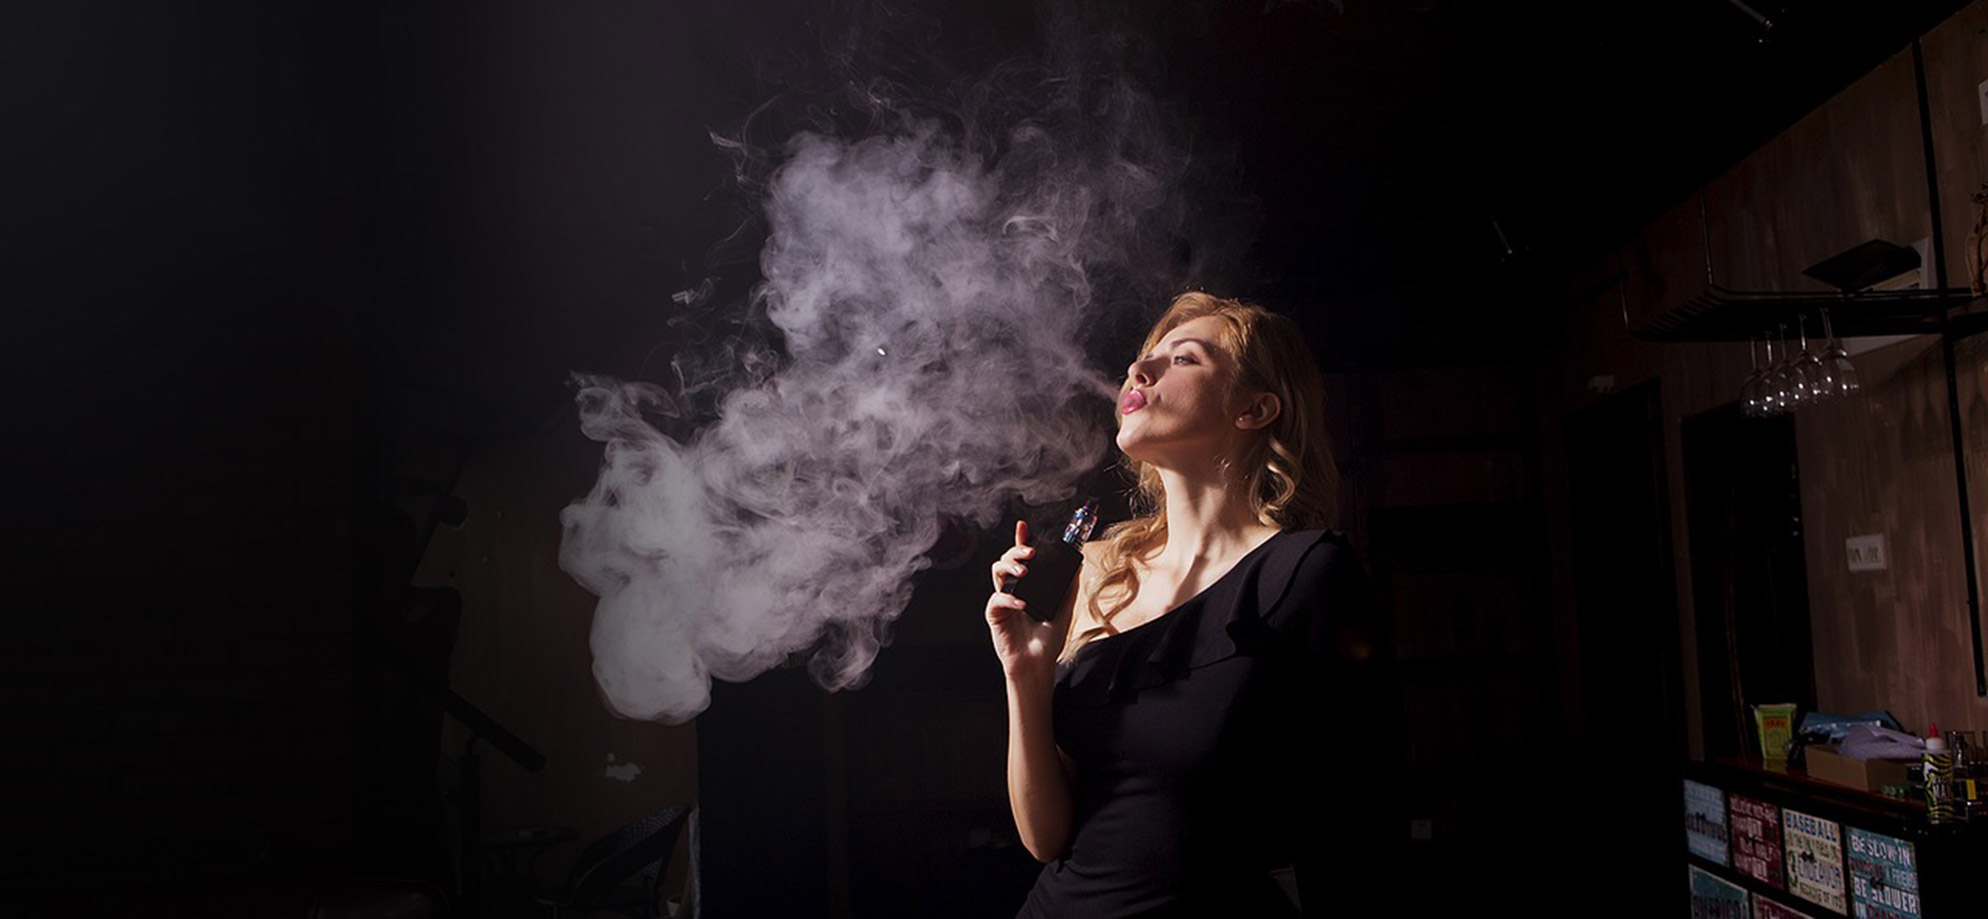 7 Things You Didn't Know About Vaping